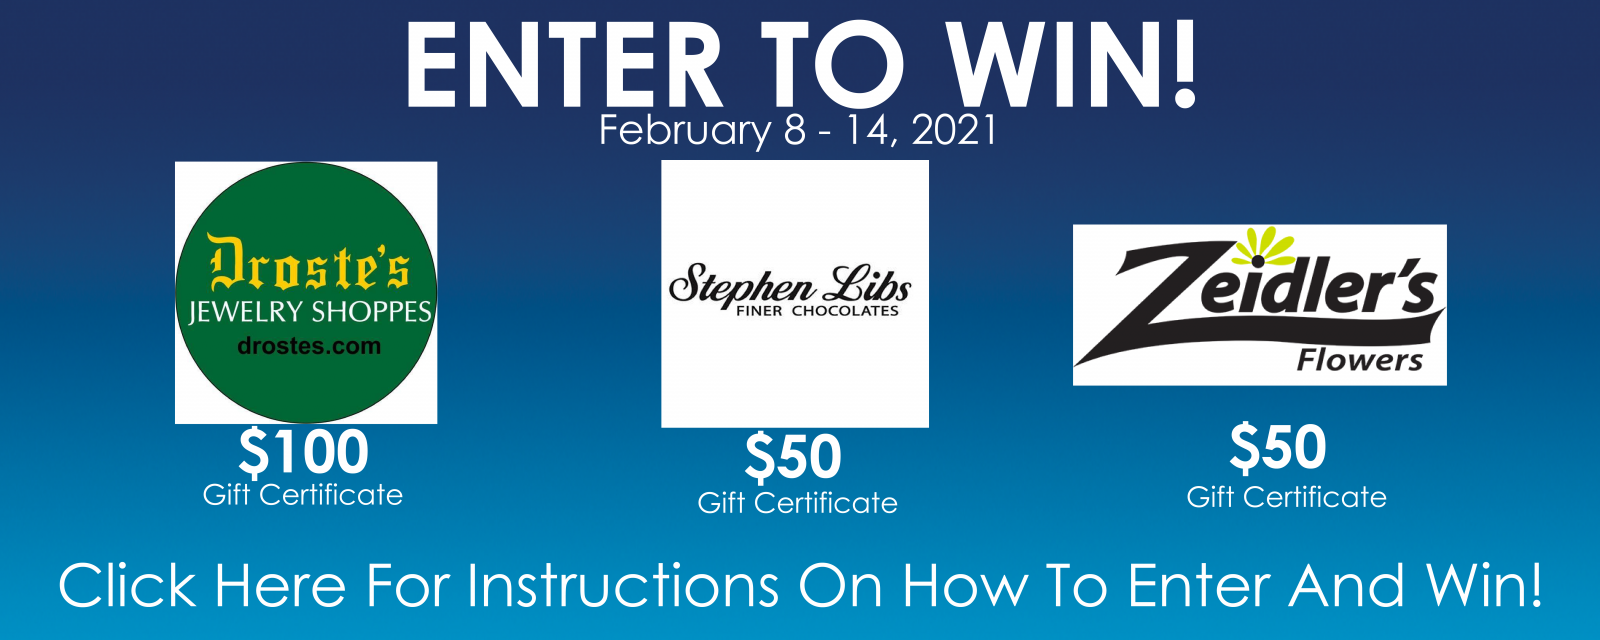 Enter To Win Now!